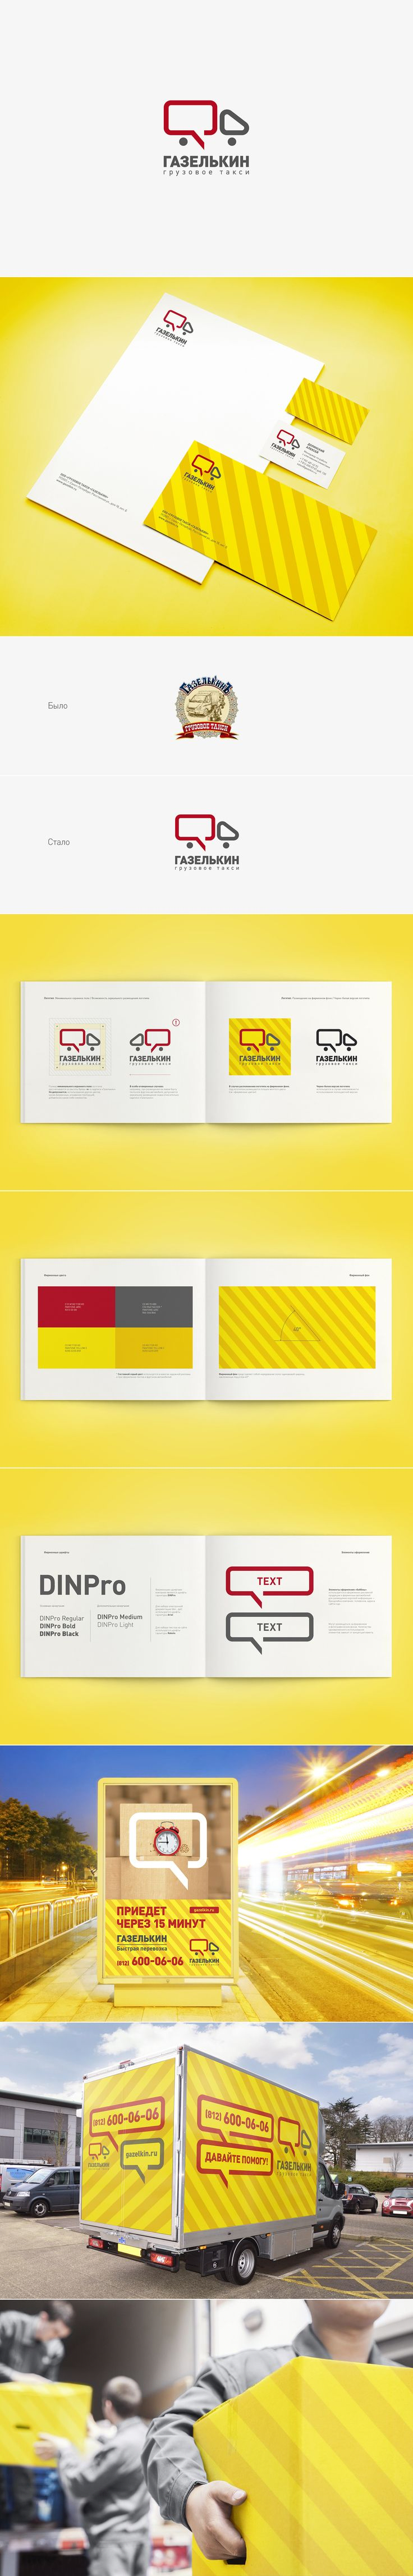 """Redesign of the logo, corporate identity and advertising materials for """"Cargo taxi"""" Gazelkin """"."""